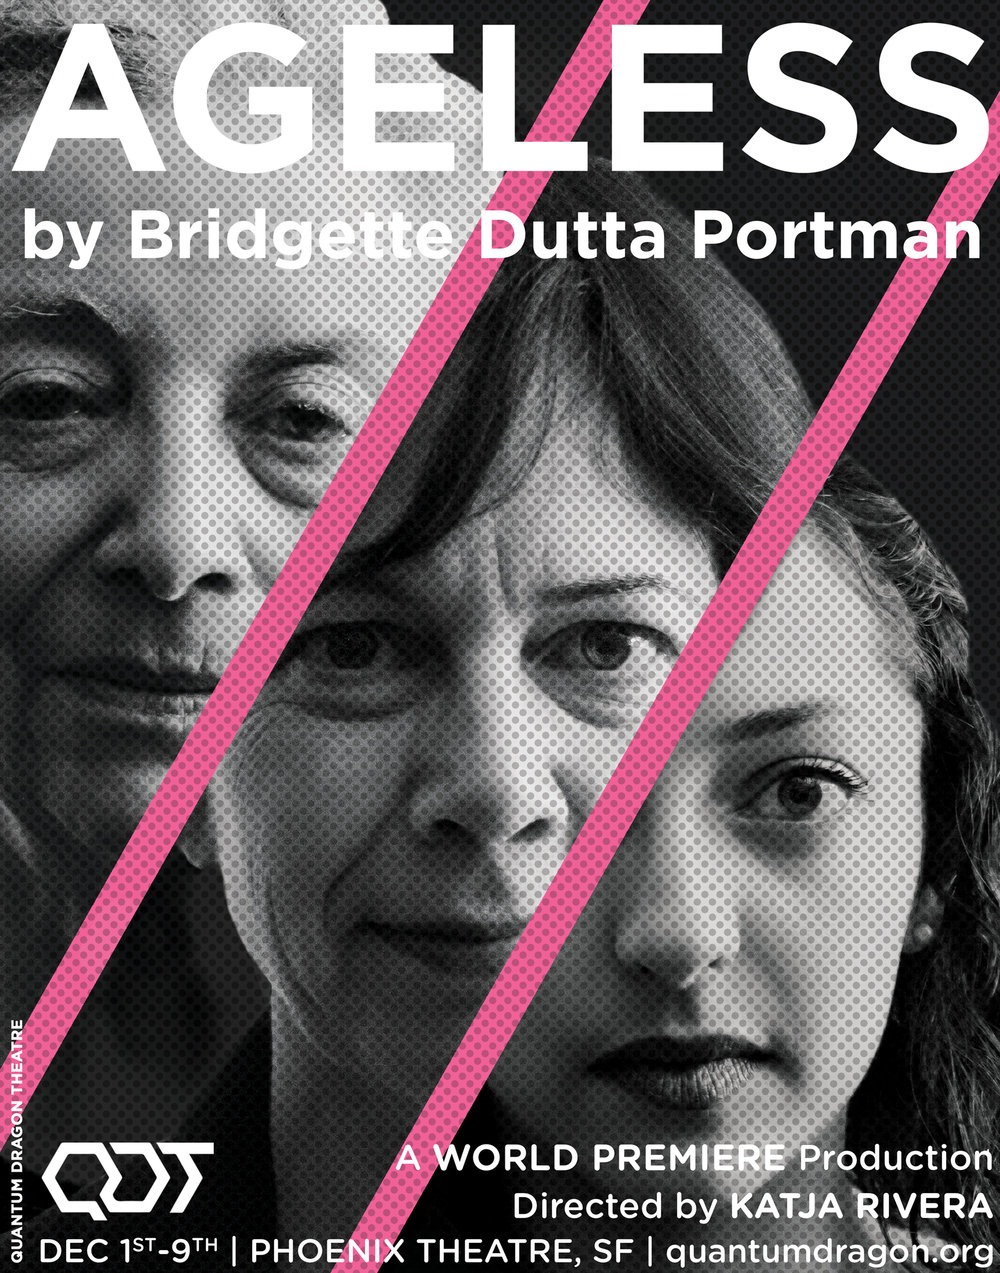 Ageless - OR, THE REVOLT OF THE FLESHBy Bridgette Dutta PortmanDirected by Katja RiveraDECEMBER 1st—9th, 2017The Phoenix Theatre414 Mason Street, SF